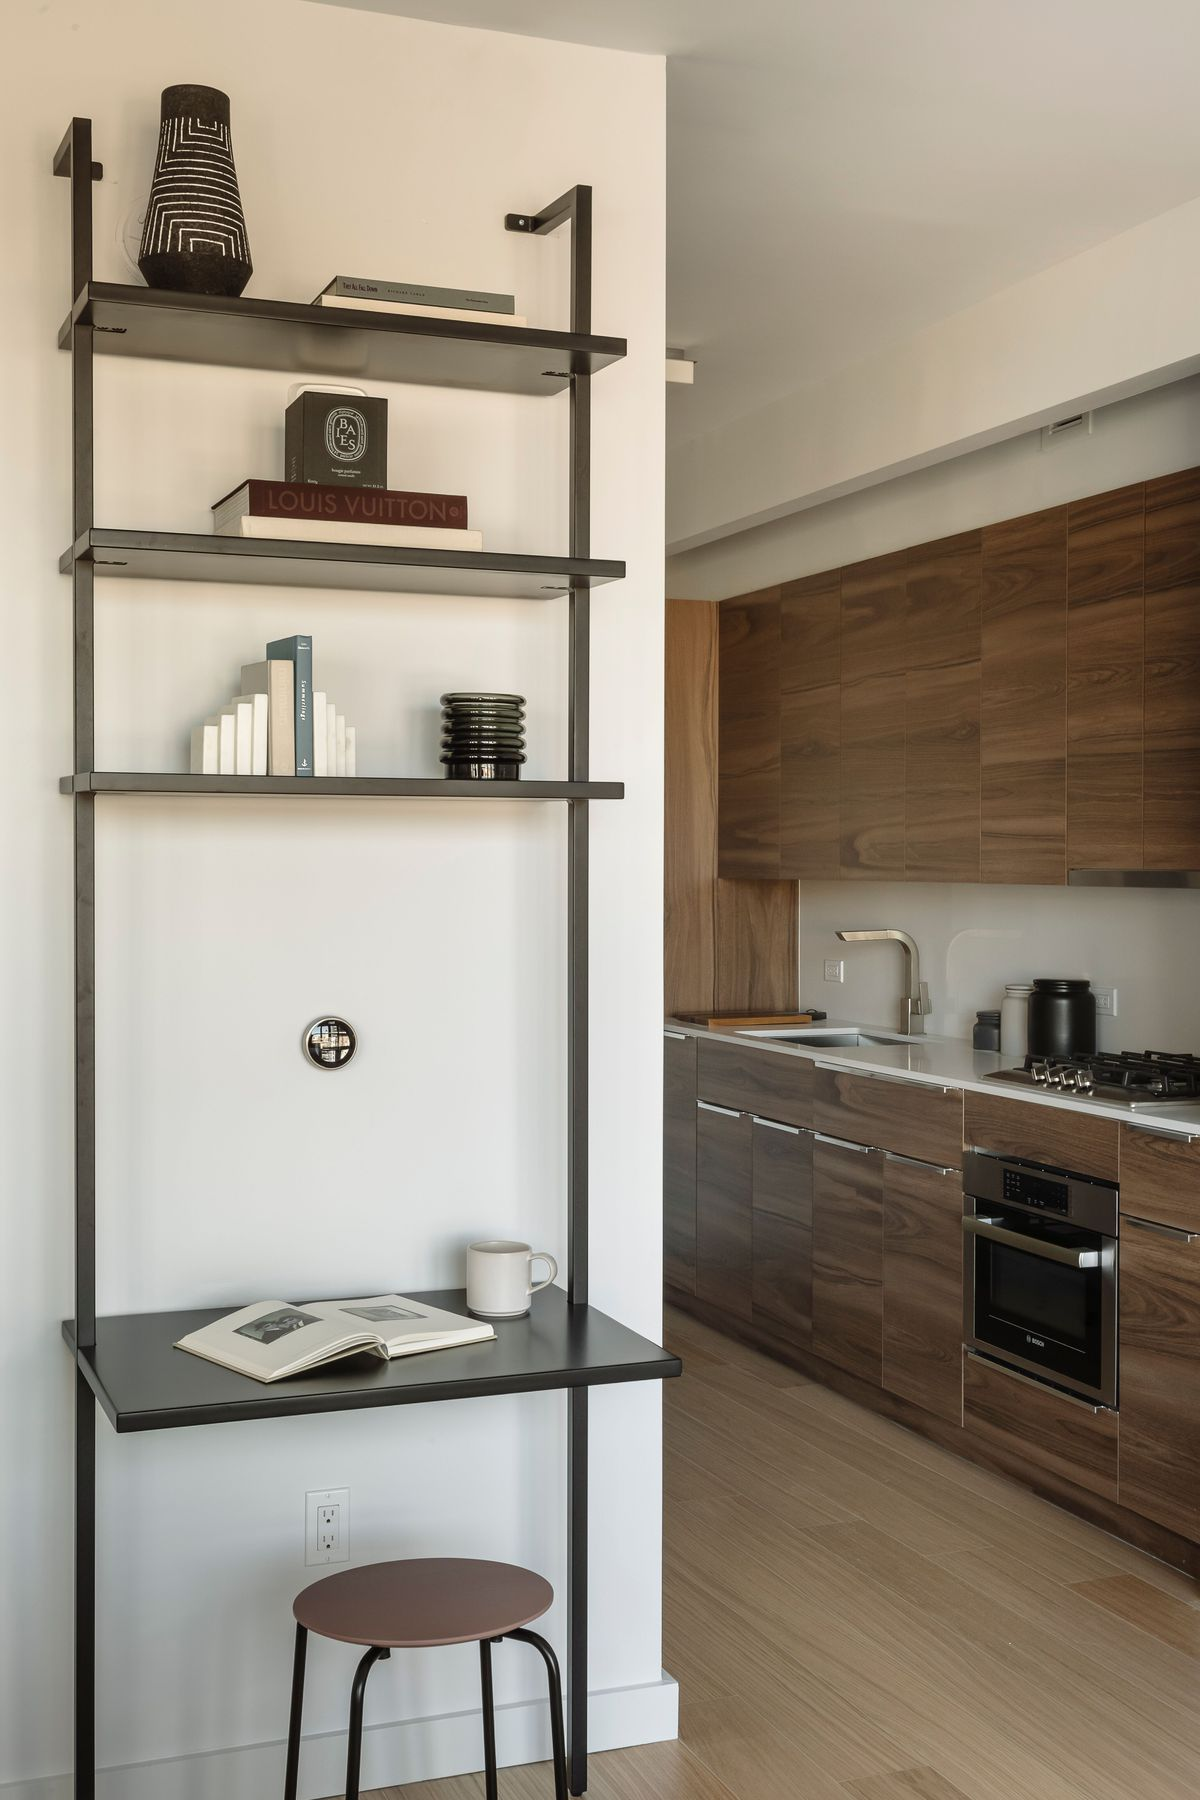 An area with a bookshelf and a kitchen behind it.